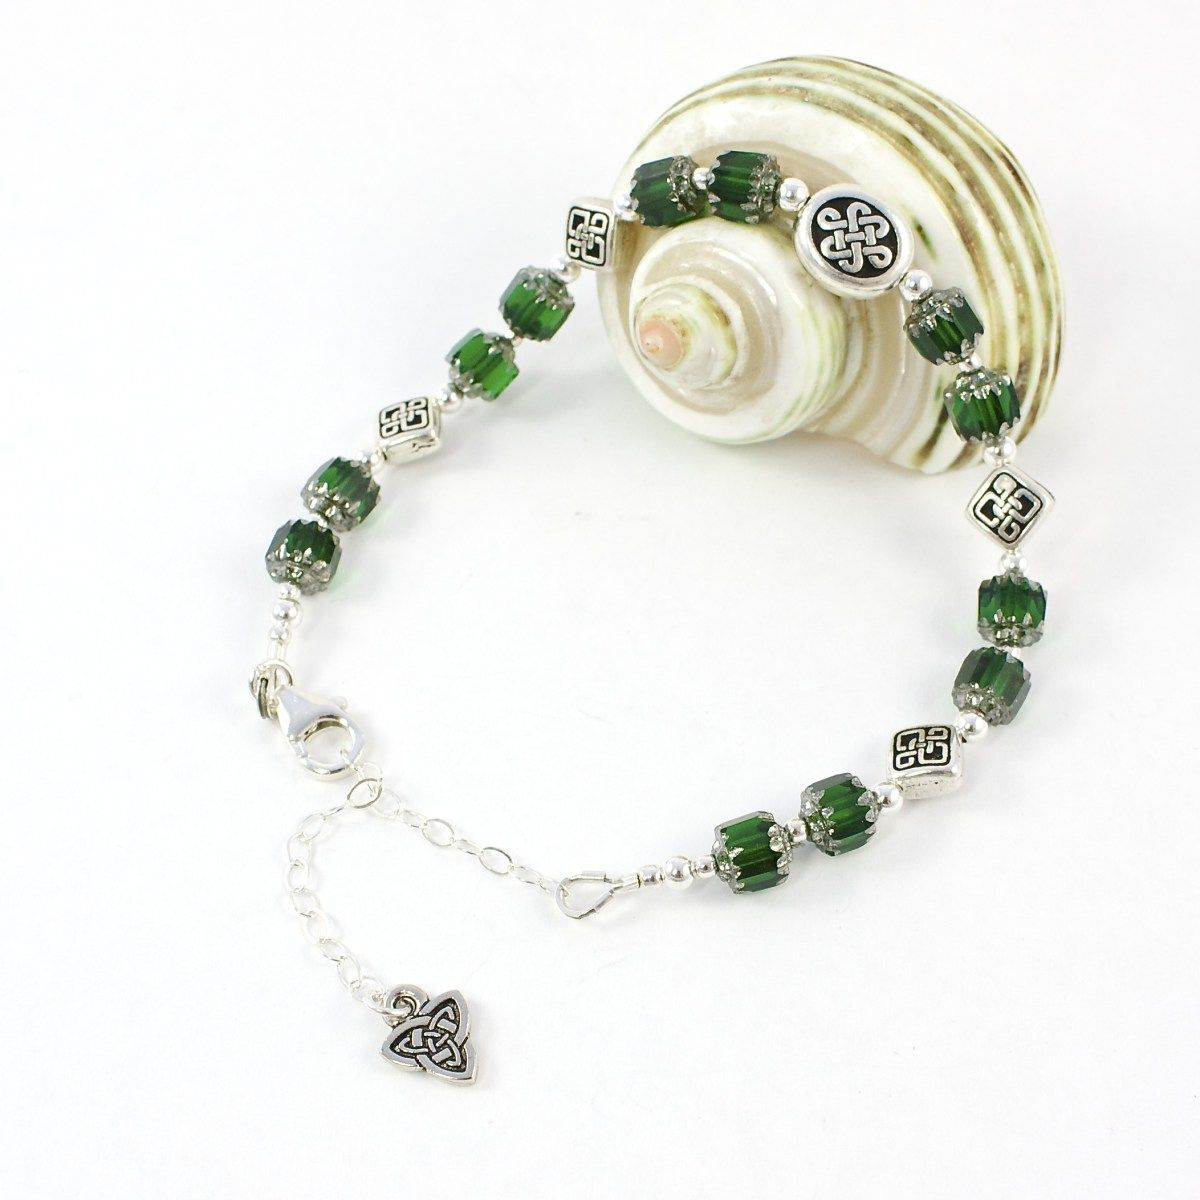 """Celtic Knot Bracelet #Handmade by @solanakaidesign -- from listing:  """"This Celtic knot bracelet features fine silver plated Celtic knot beads, emerald green Czech glass cathedral beads and sterling silver beads ..."""""""